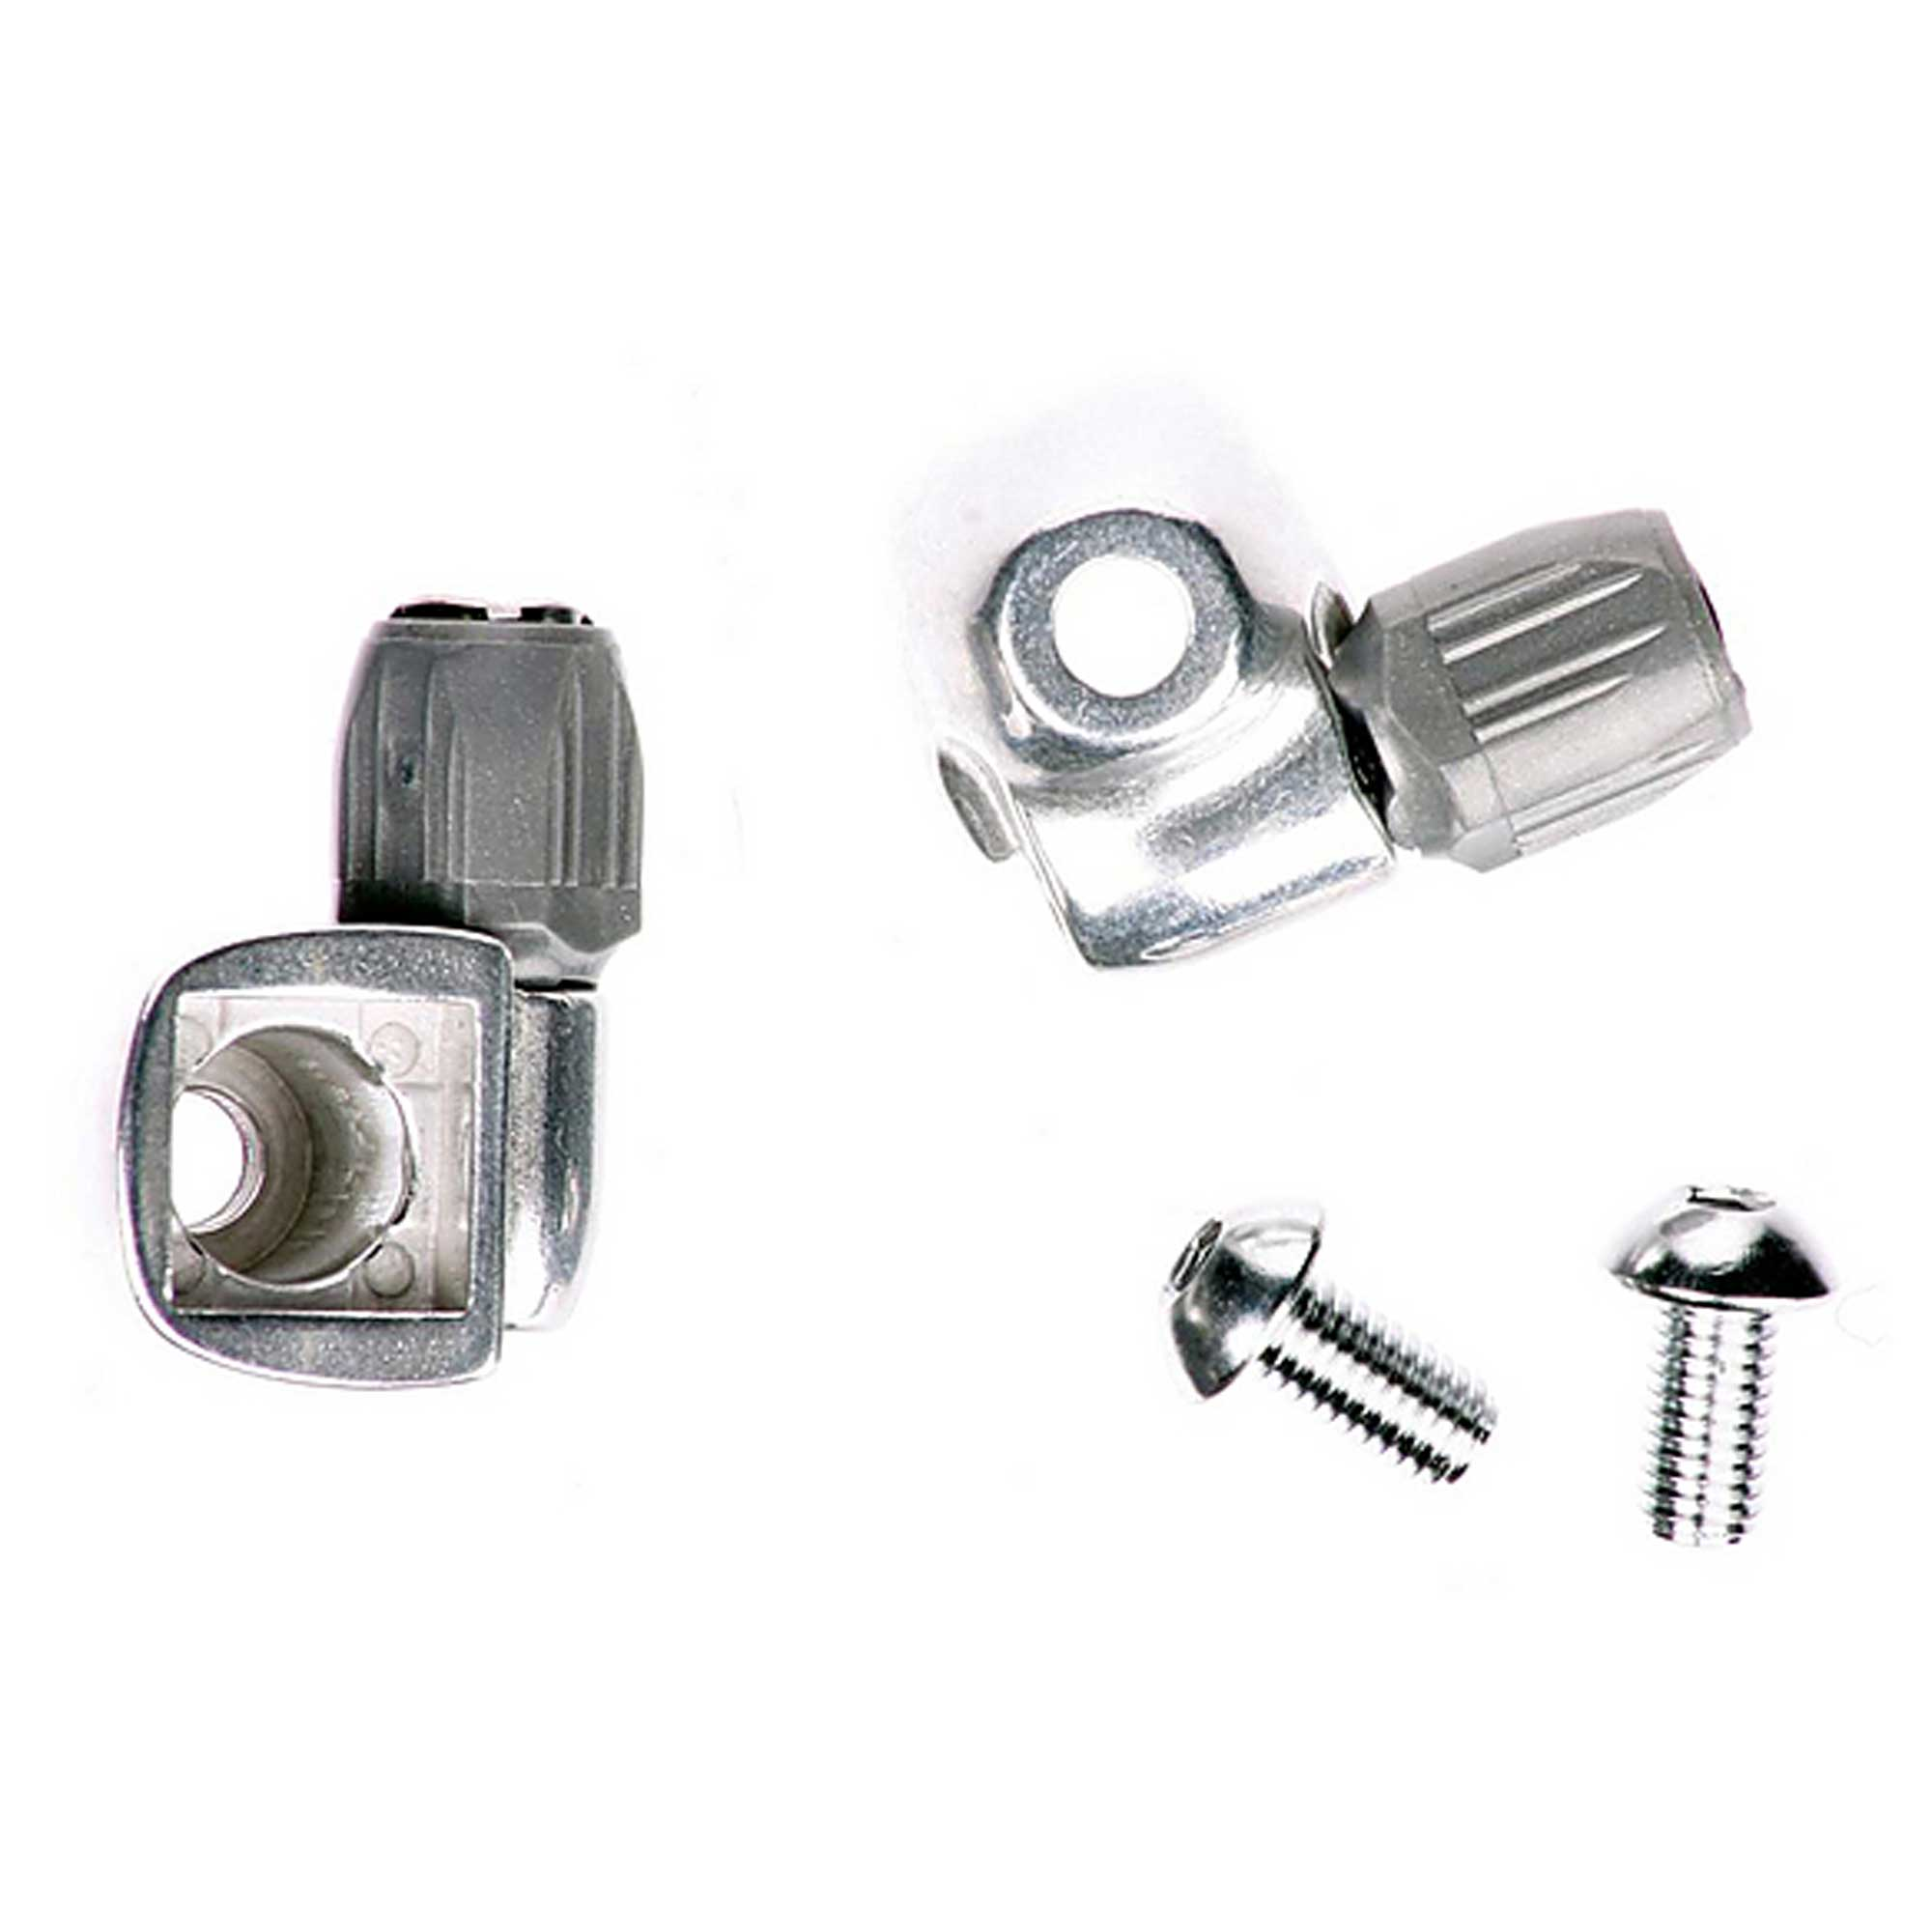 Shimano SM-CS50 Outer Cable Stopper Assembly Shift Boss Barrel Housing Curved